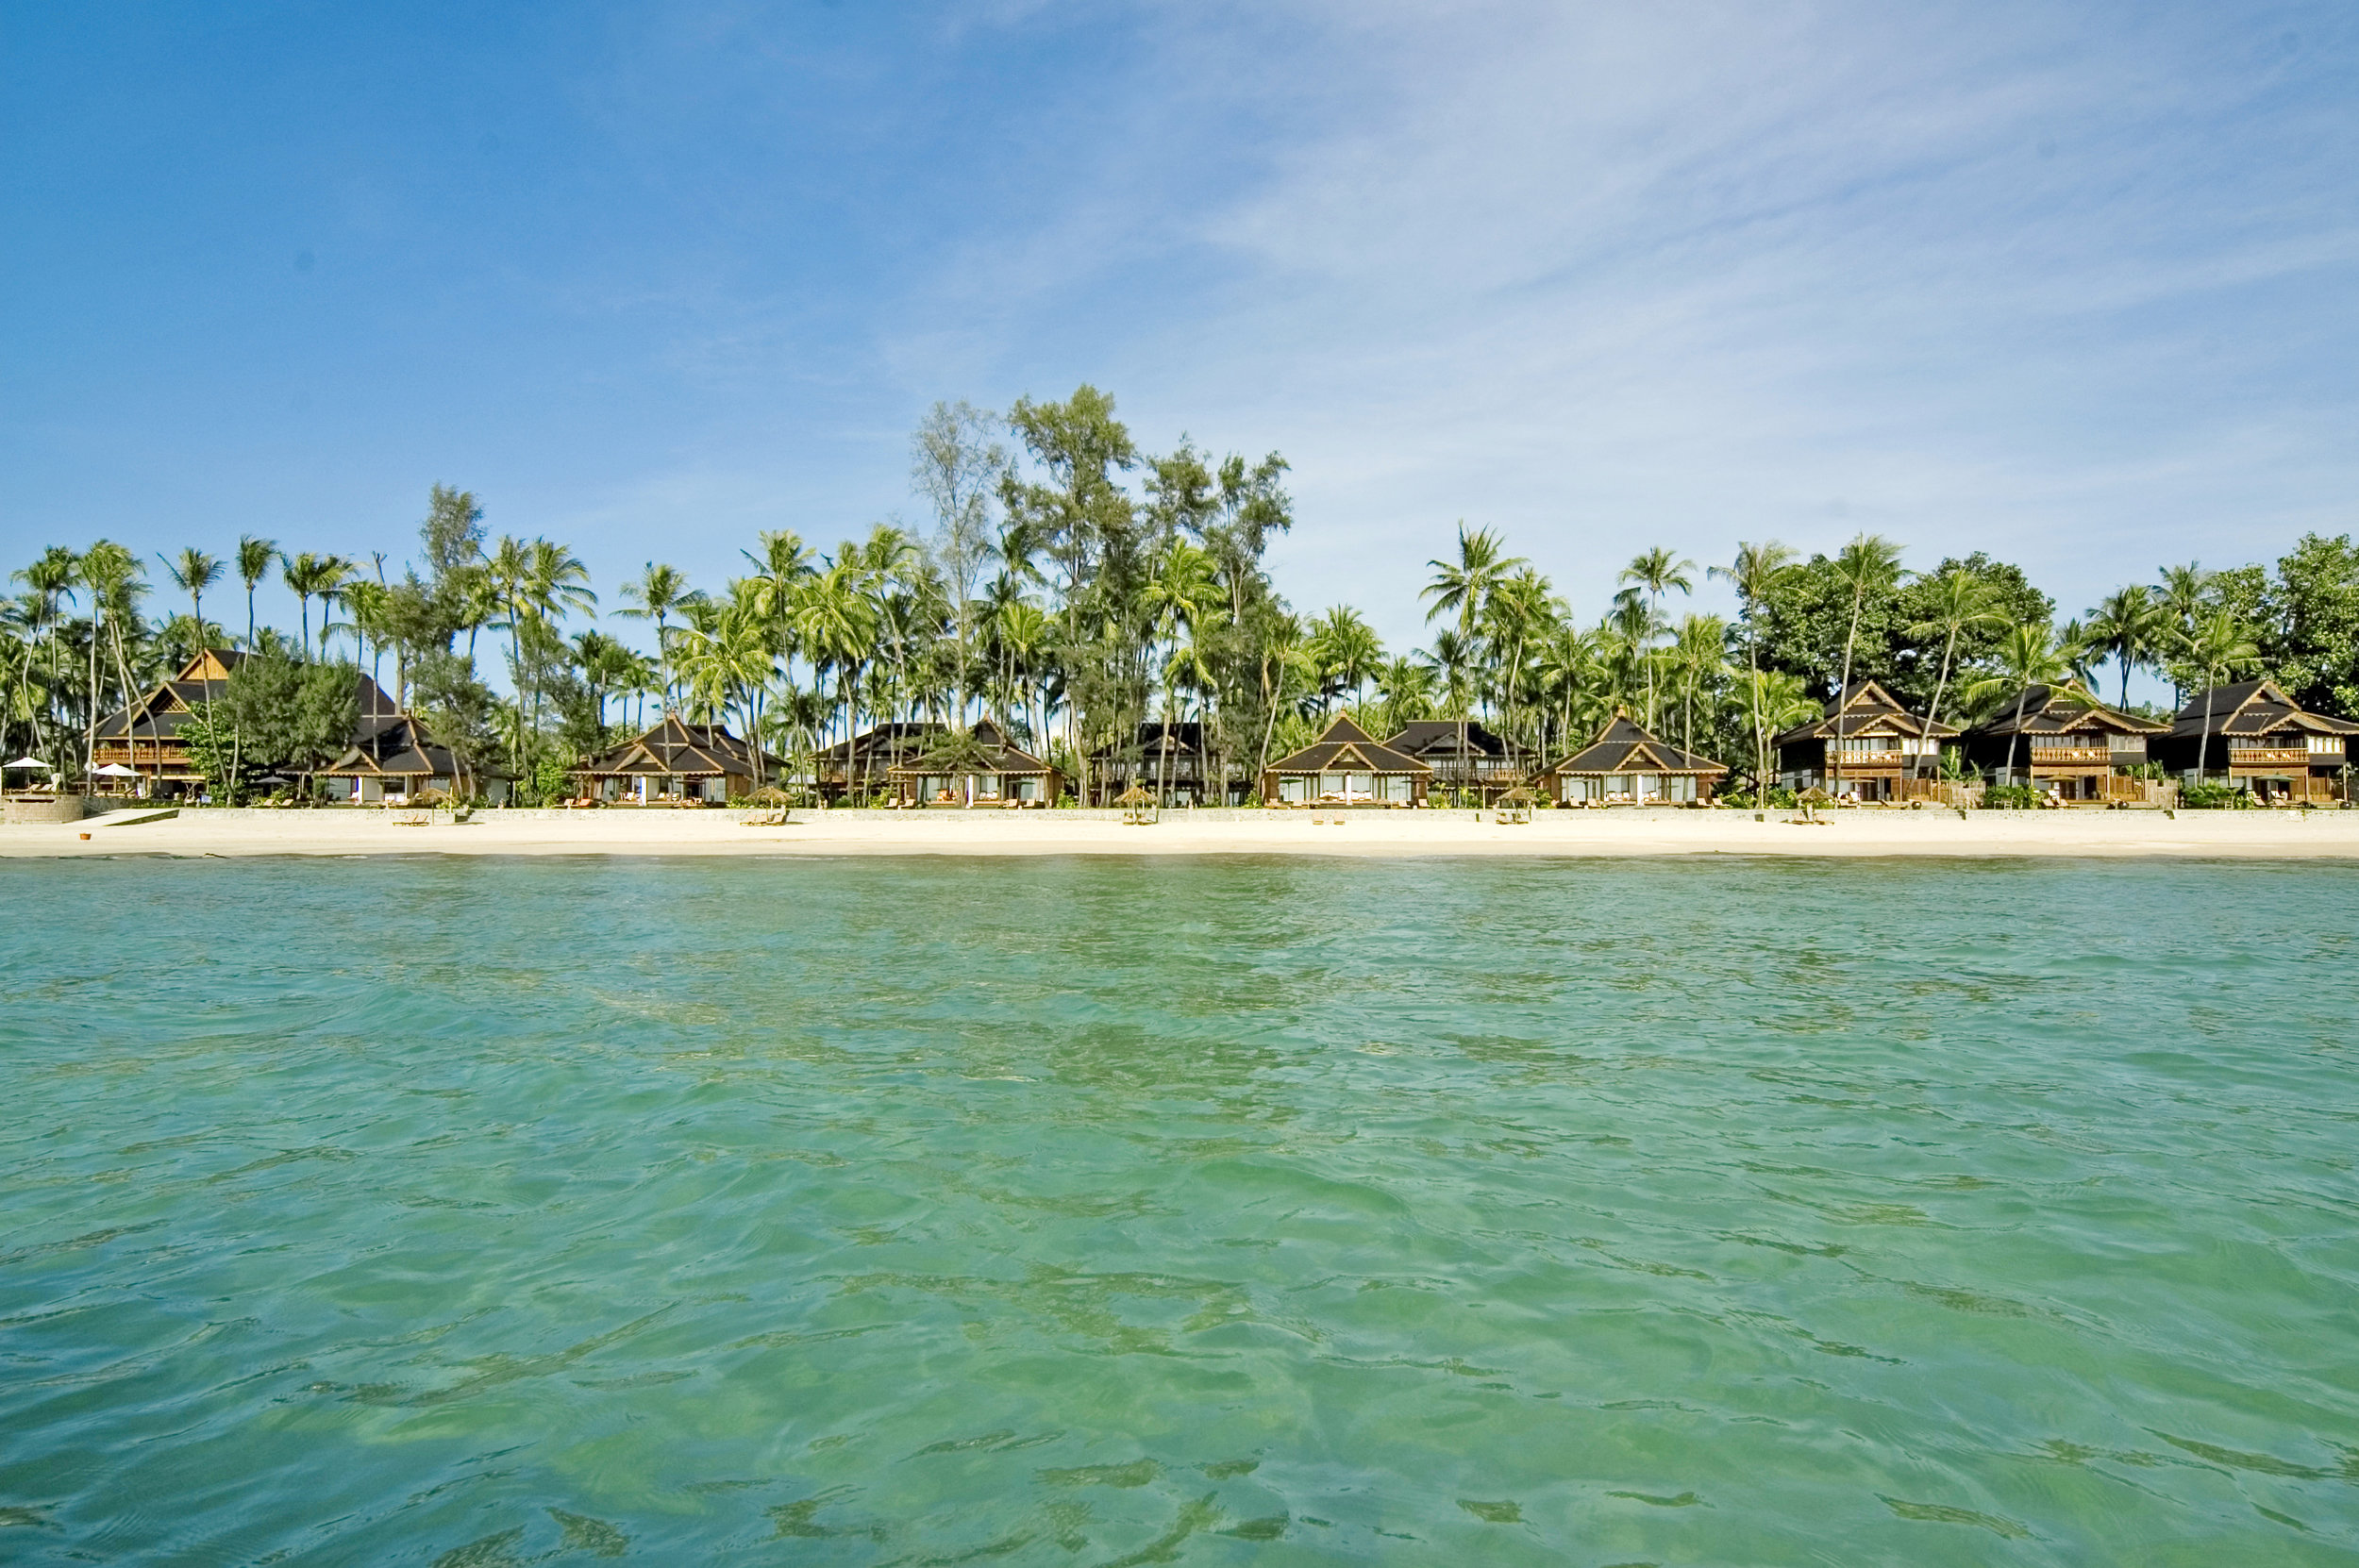 ngapali - Sitting on the clear waters of the Bay of Bengal, Ngapali is a sleepy resort town populated by local fishermen and rustic bungalows along its palm-fringed beaches.